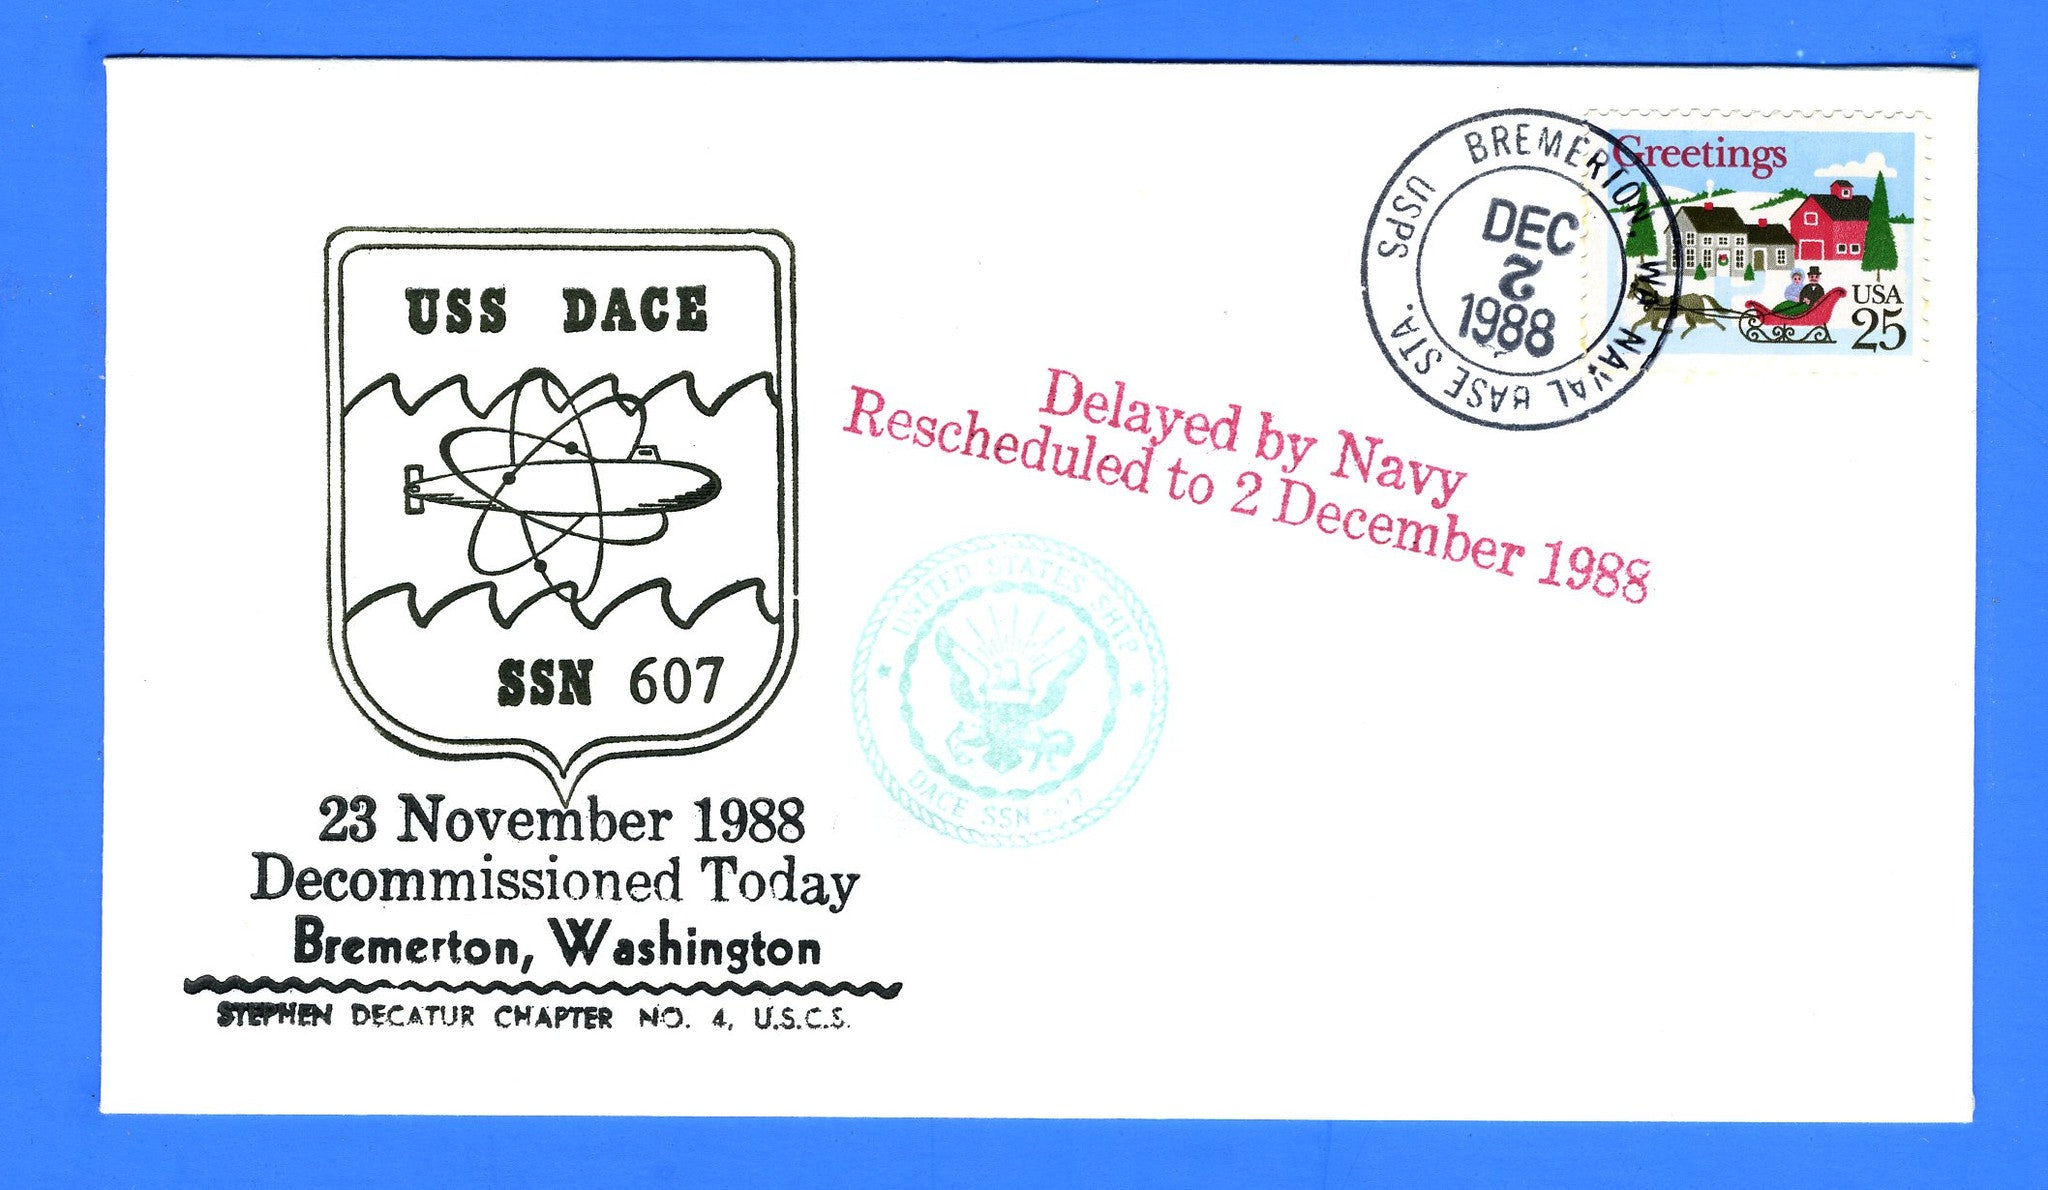 USS Dace SSN-607 Rescheduled Decommissioning Dec 2, 1988 - Decatur Chapter No. 4, USCS